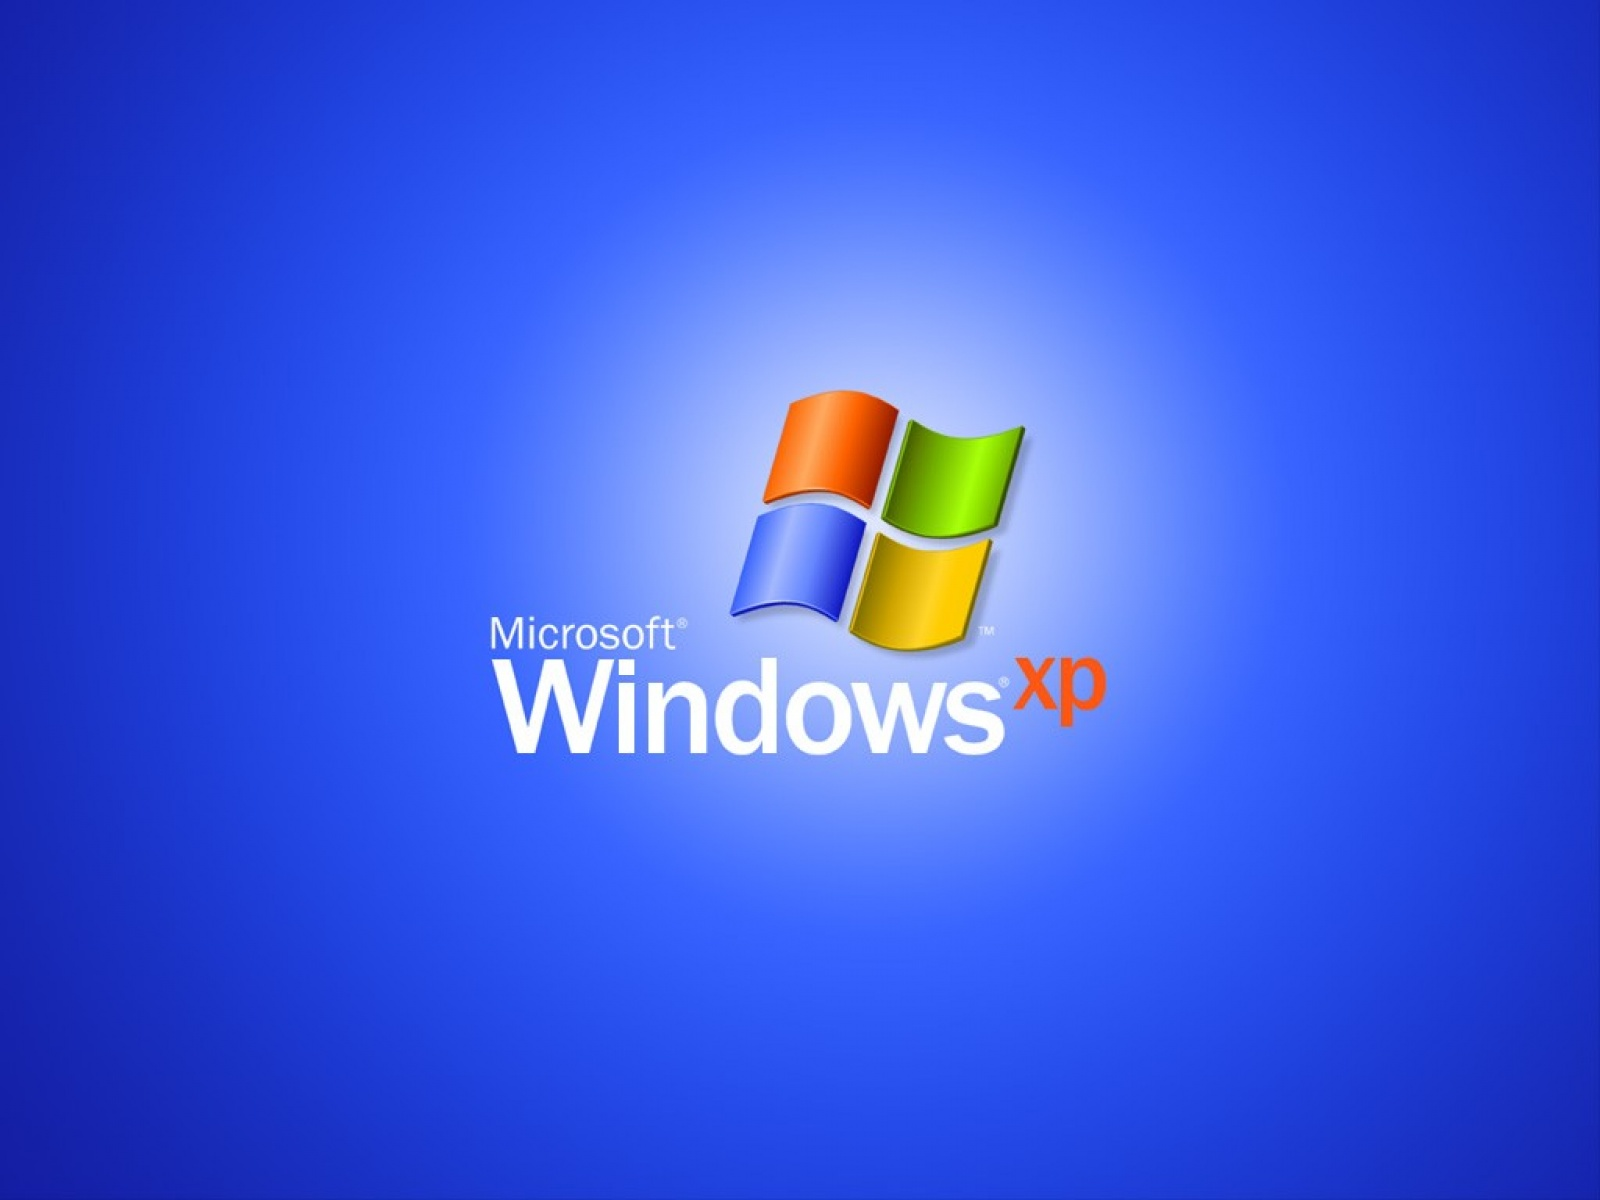 Windows XP 13 Wallpapers   7848 1600x1200